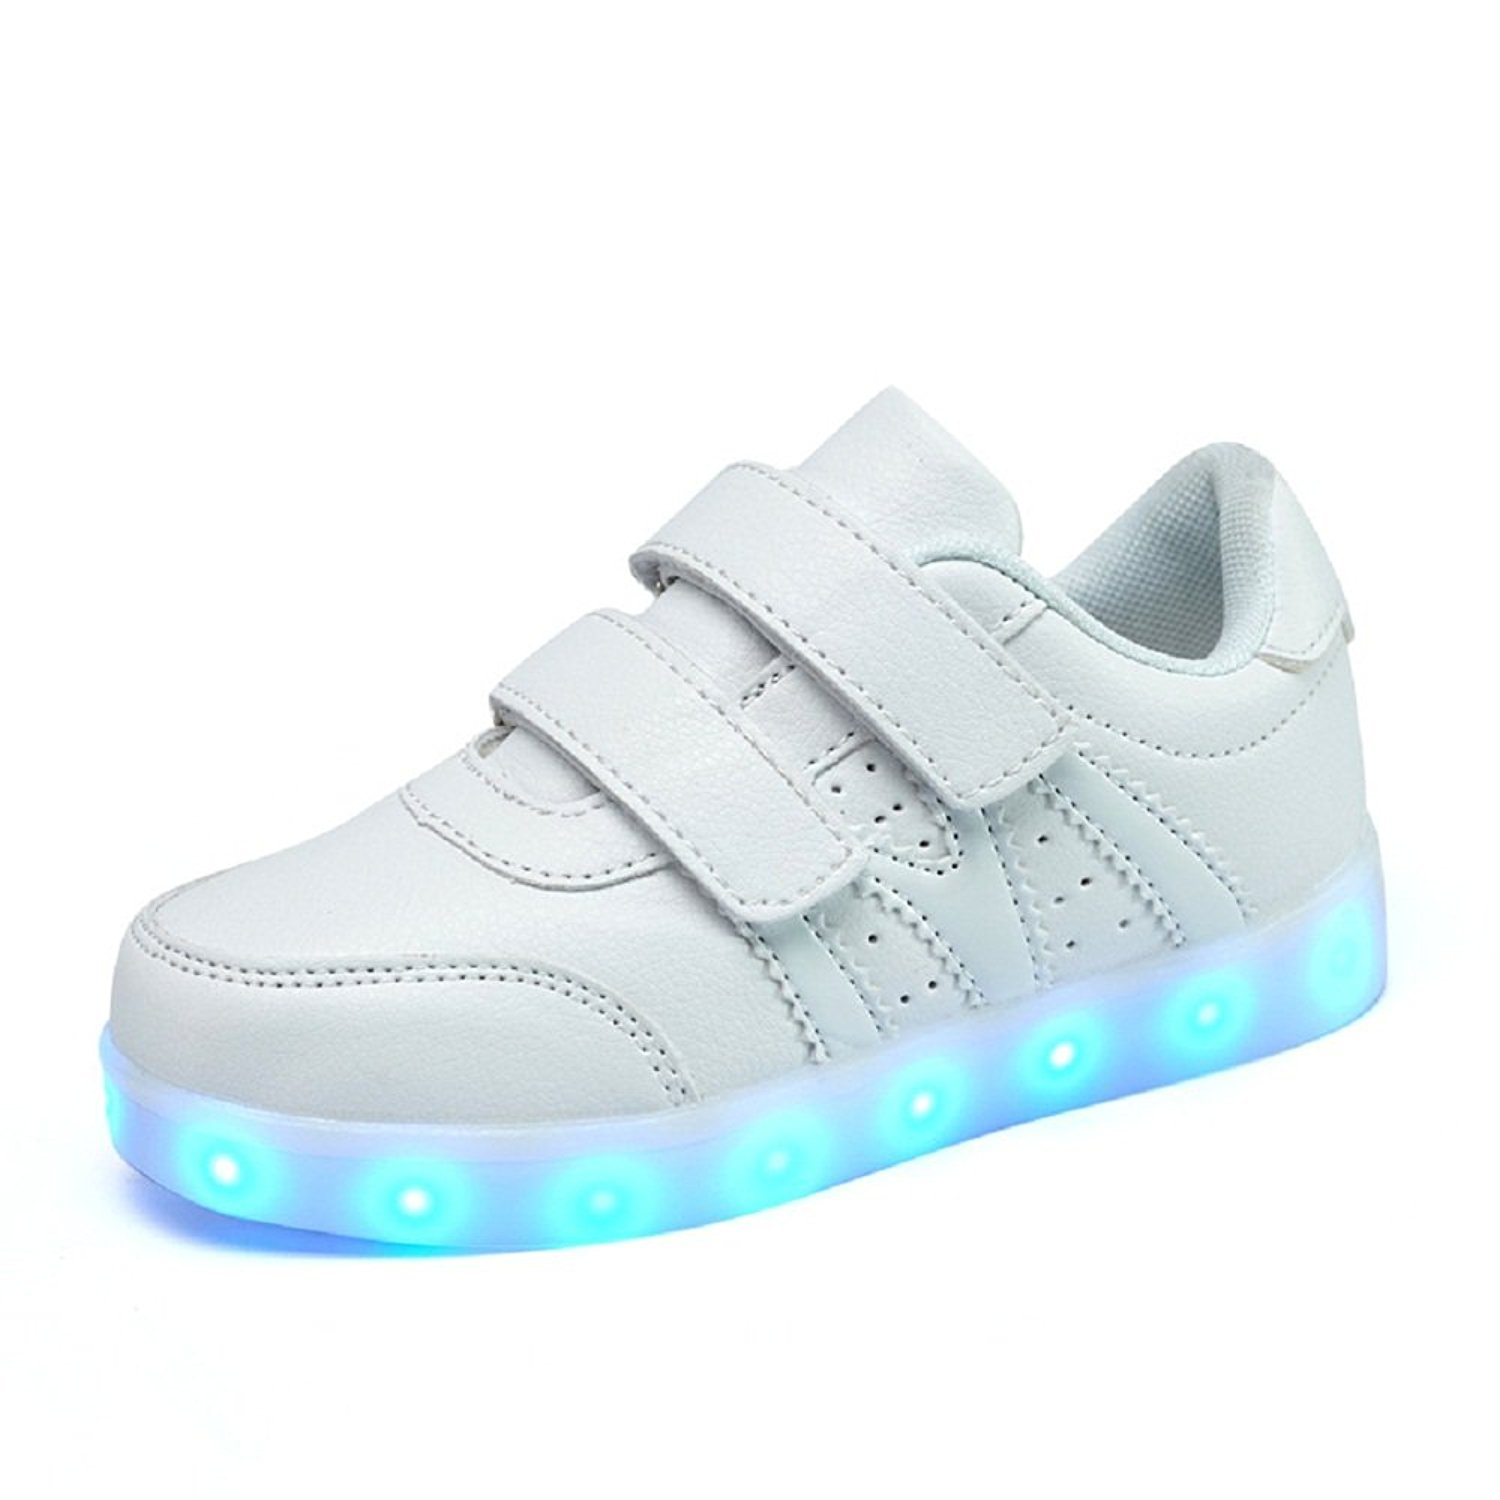 c8925d7bdde Get Quotations · New Hot Sale Children Led Lights Shoes For Boys/Girls Usb  Charger Light Schoenen Kids